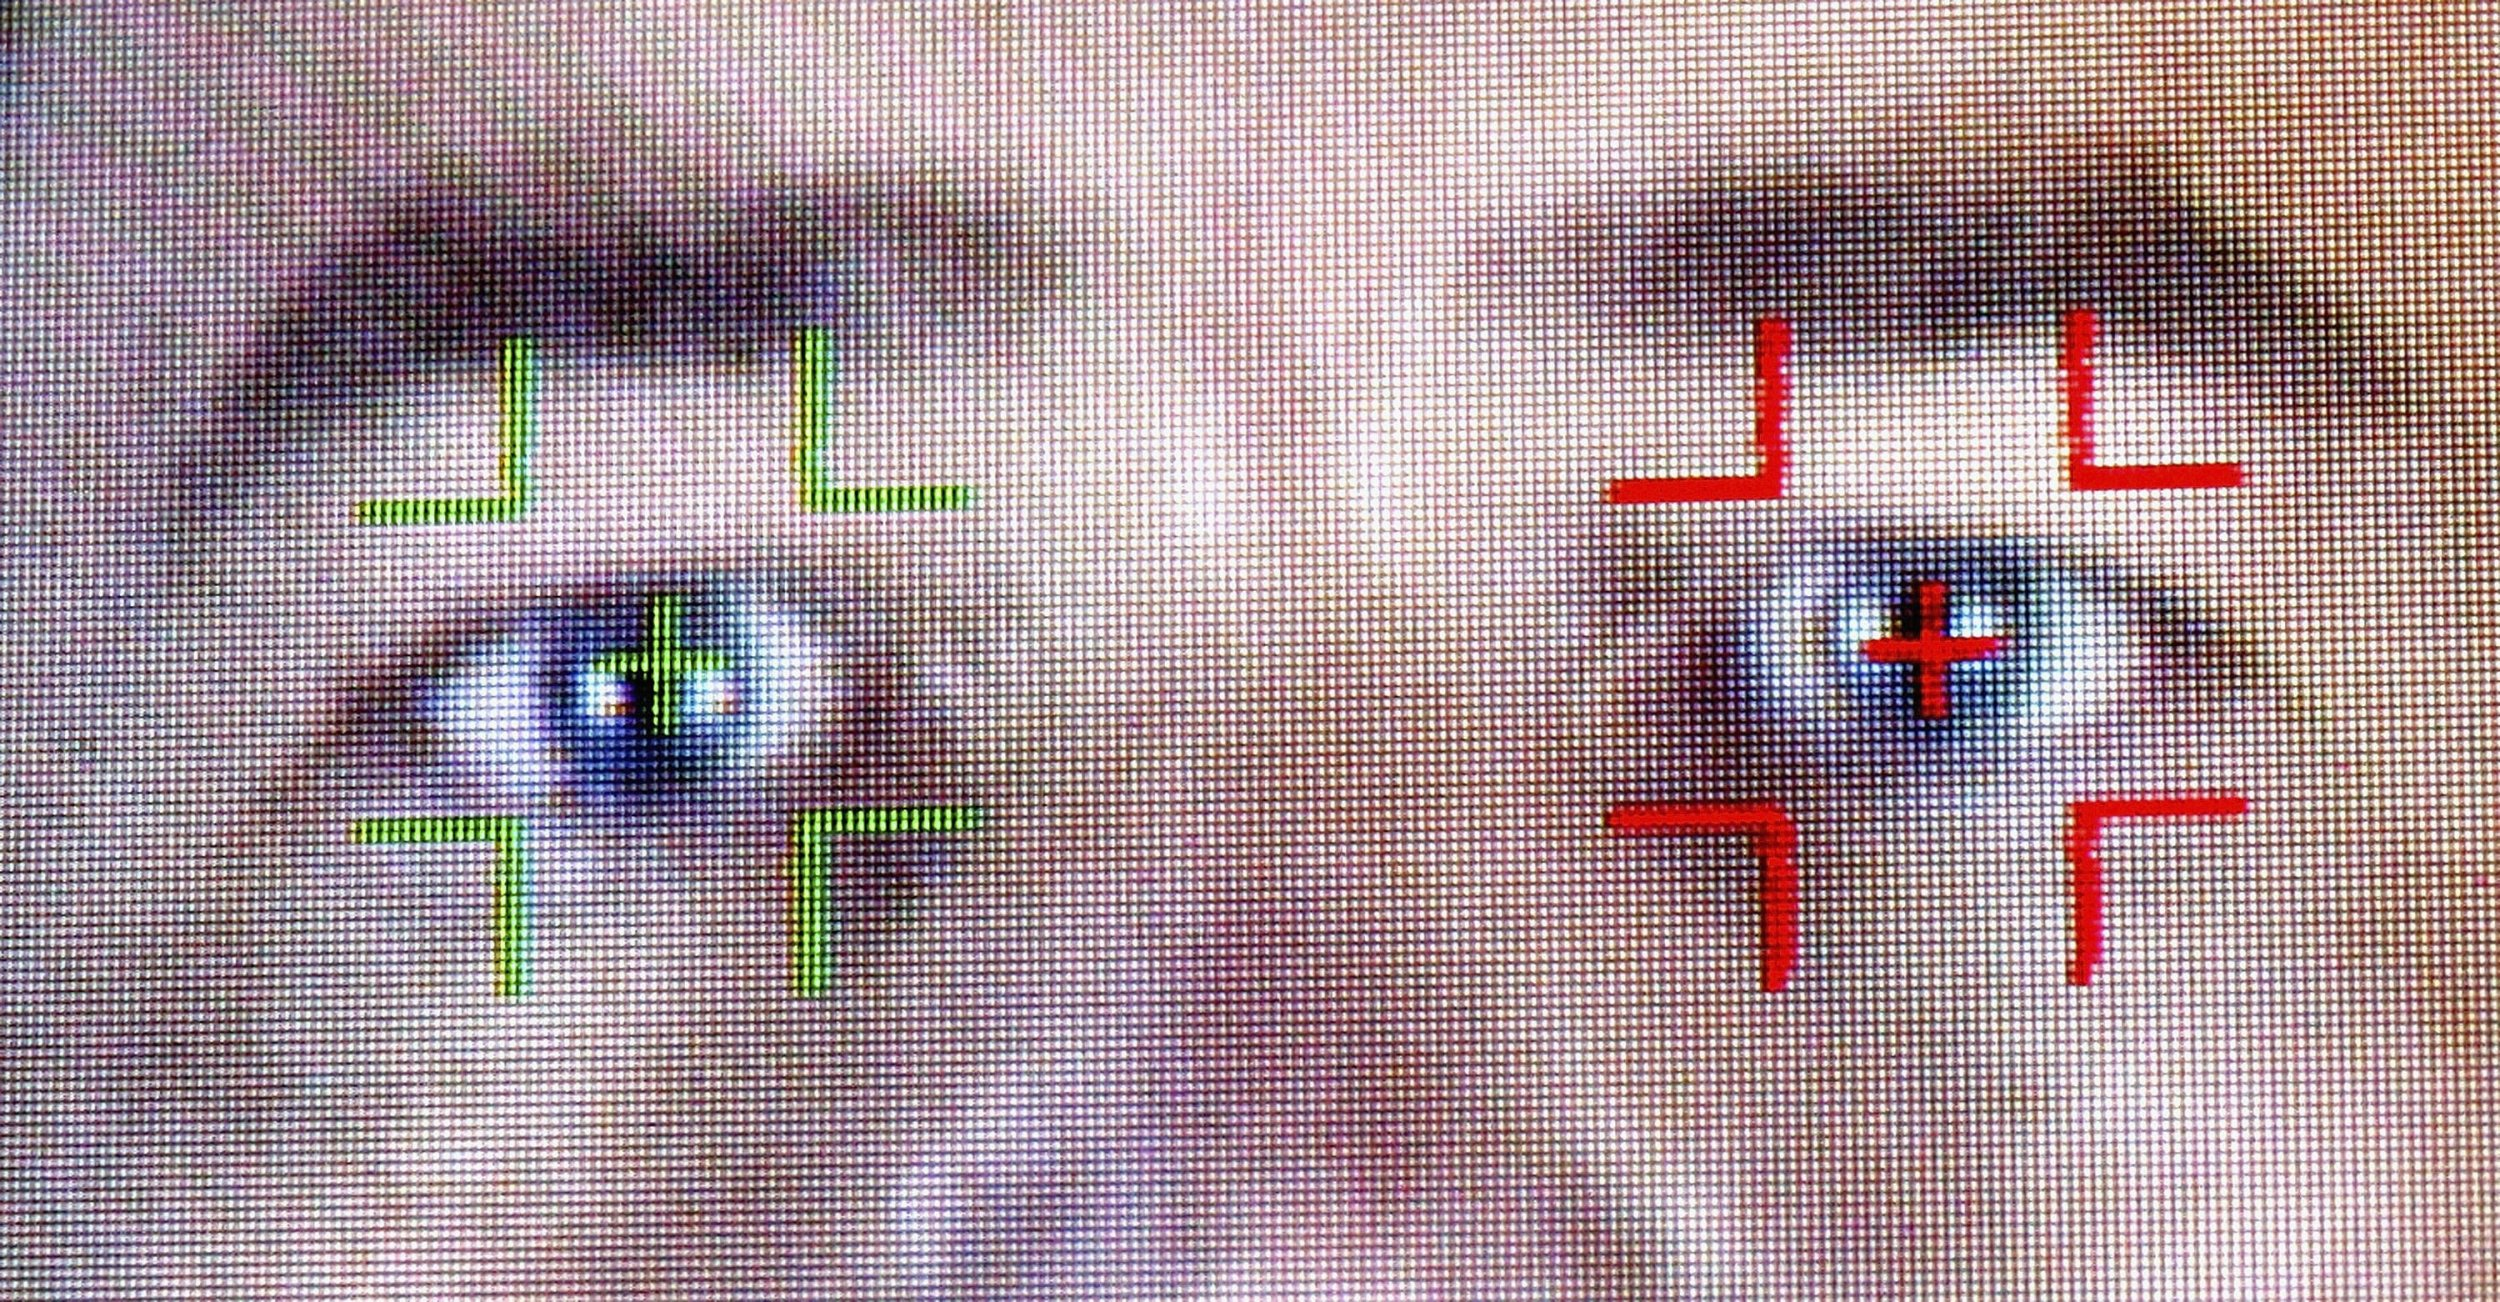 facial recognition biometrics Facebook